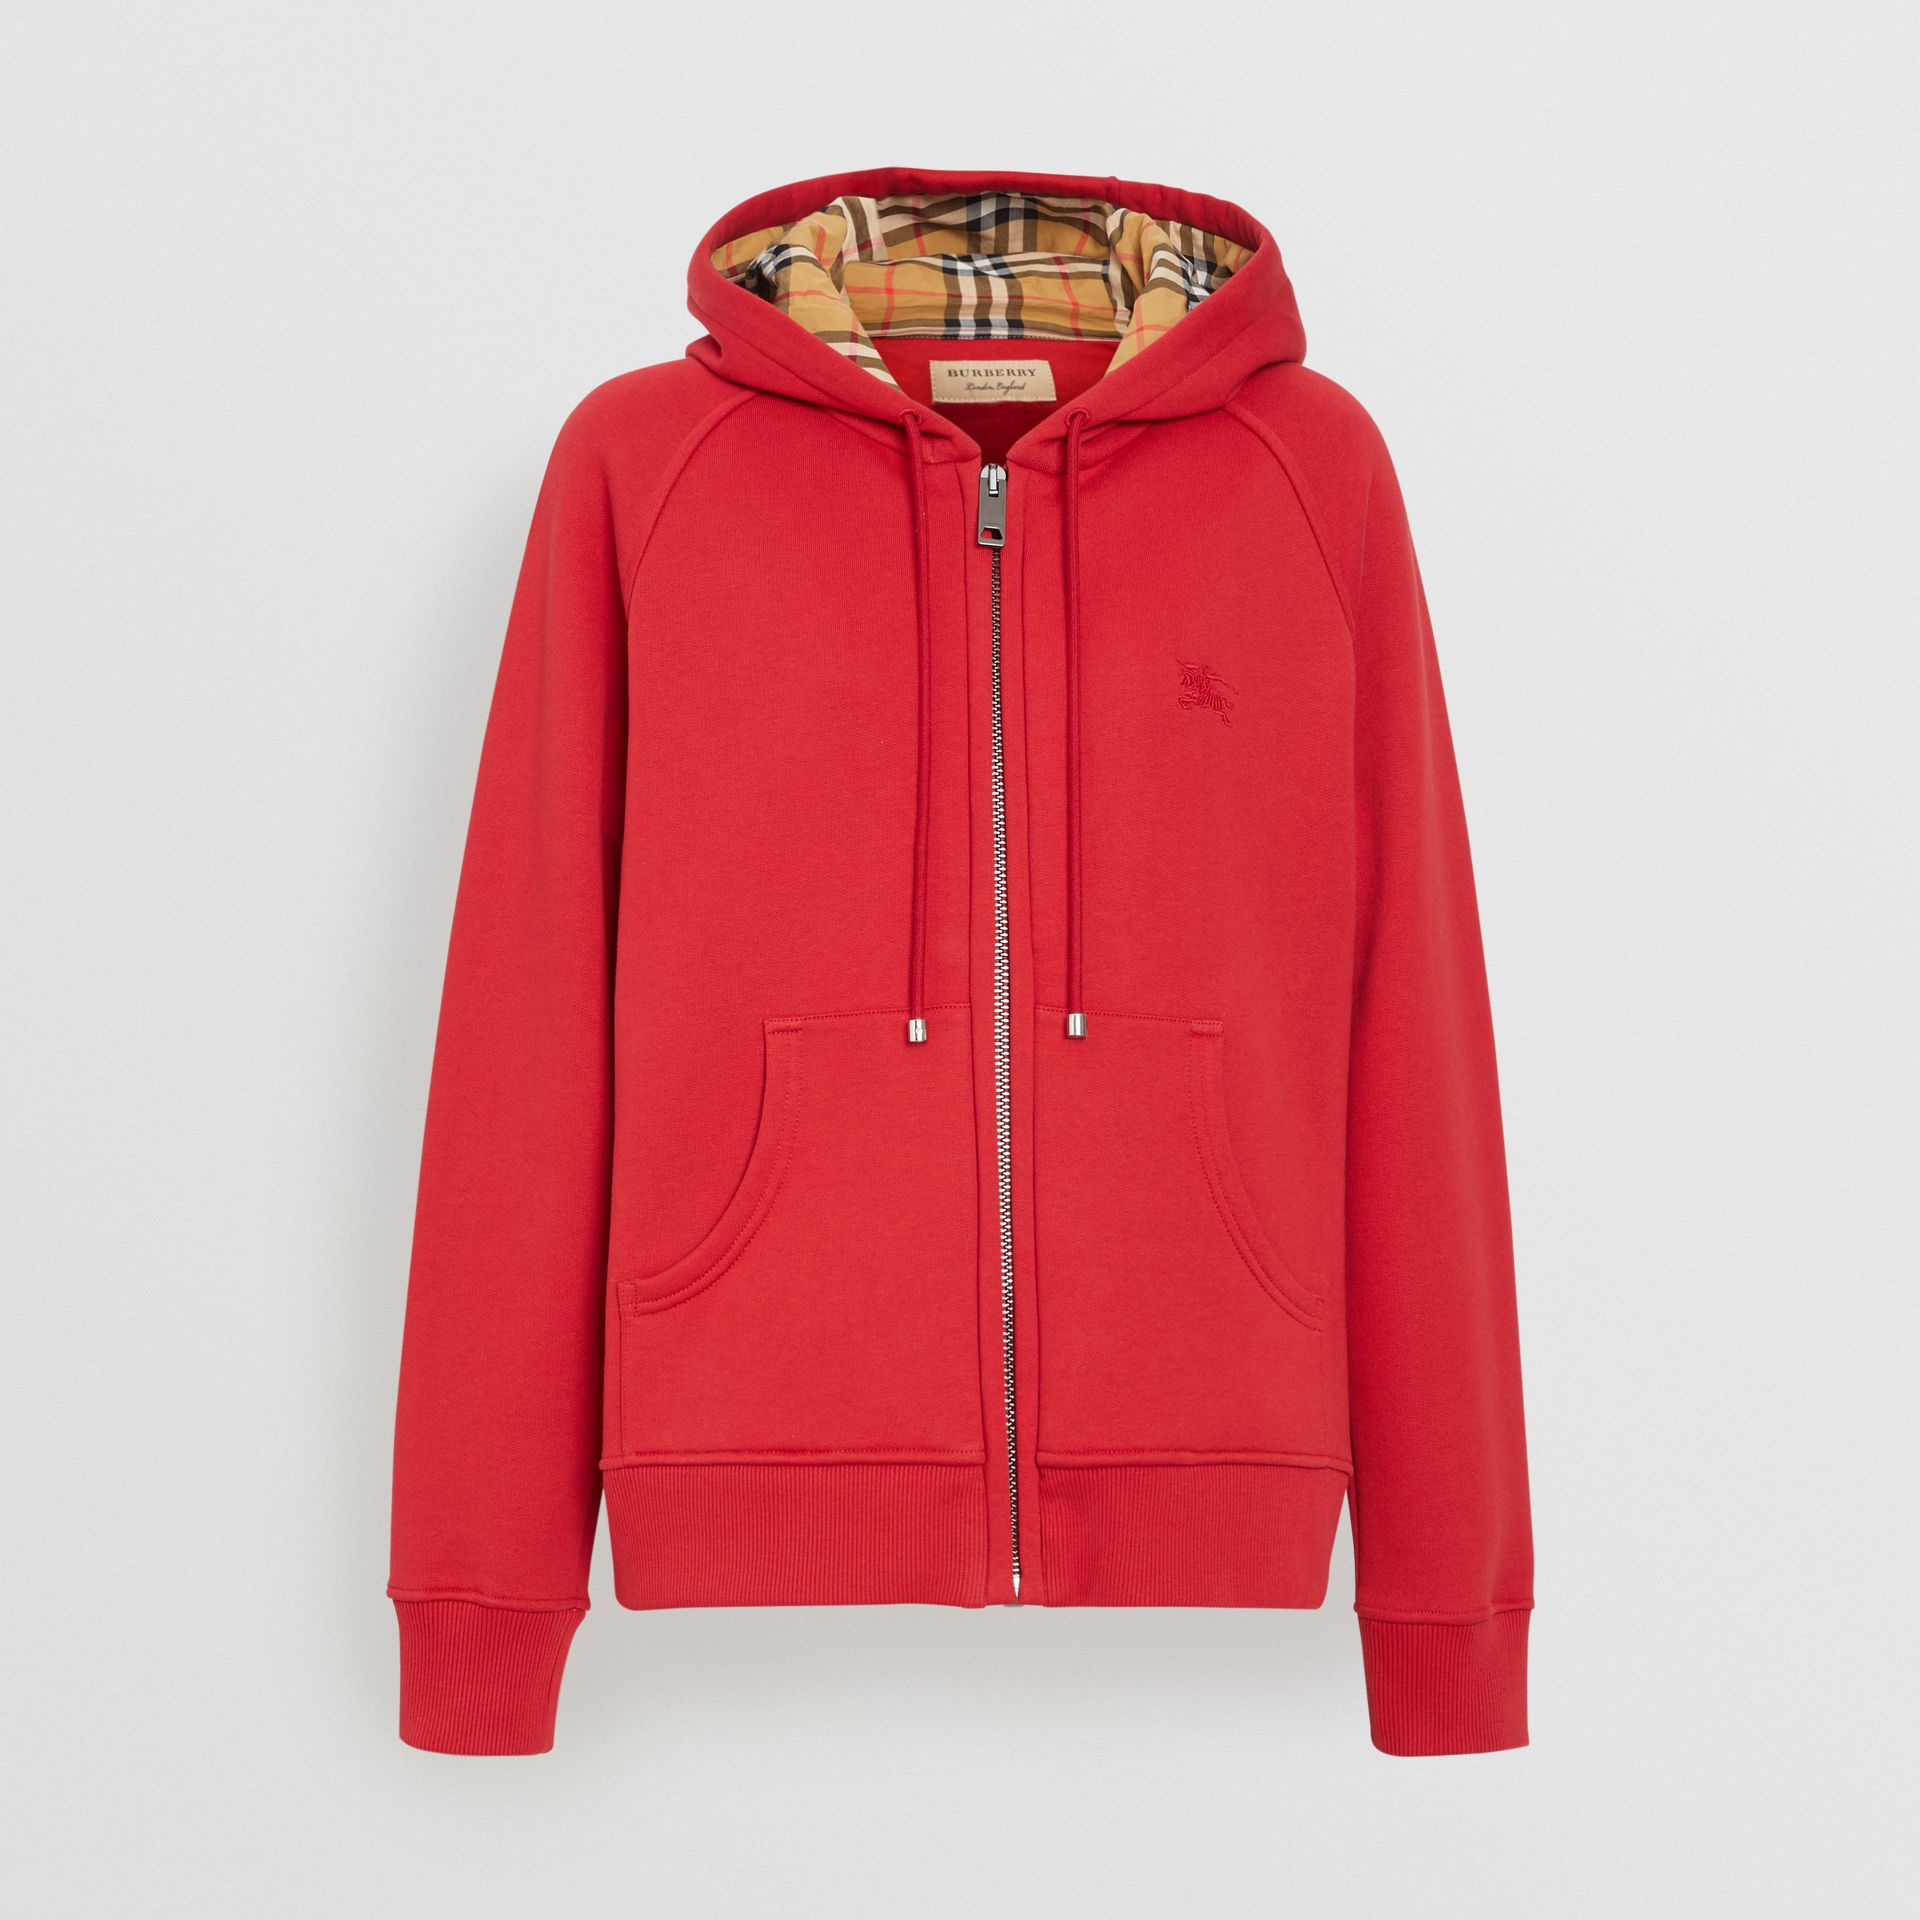 Vintage Check Detail Jersey Hooded Top in Cadmium Red - Women | Burberry - gallery image 3